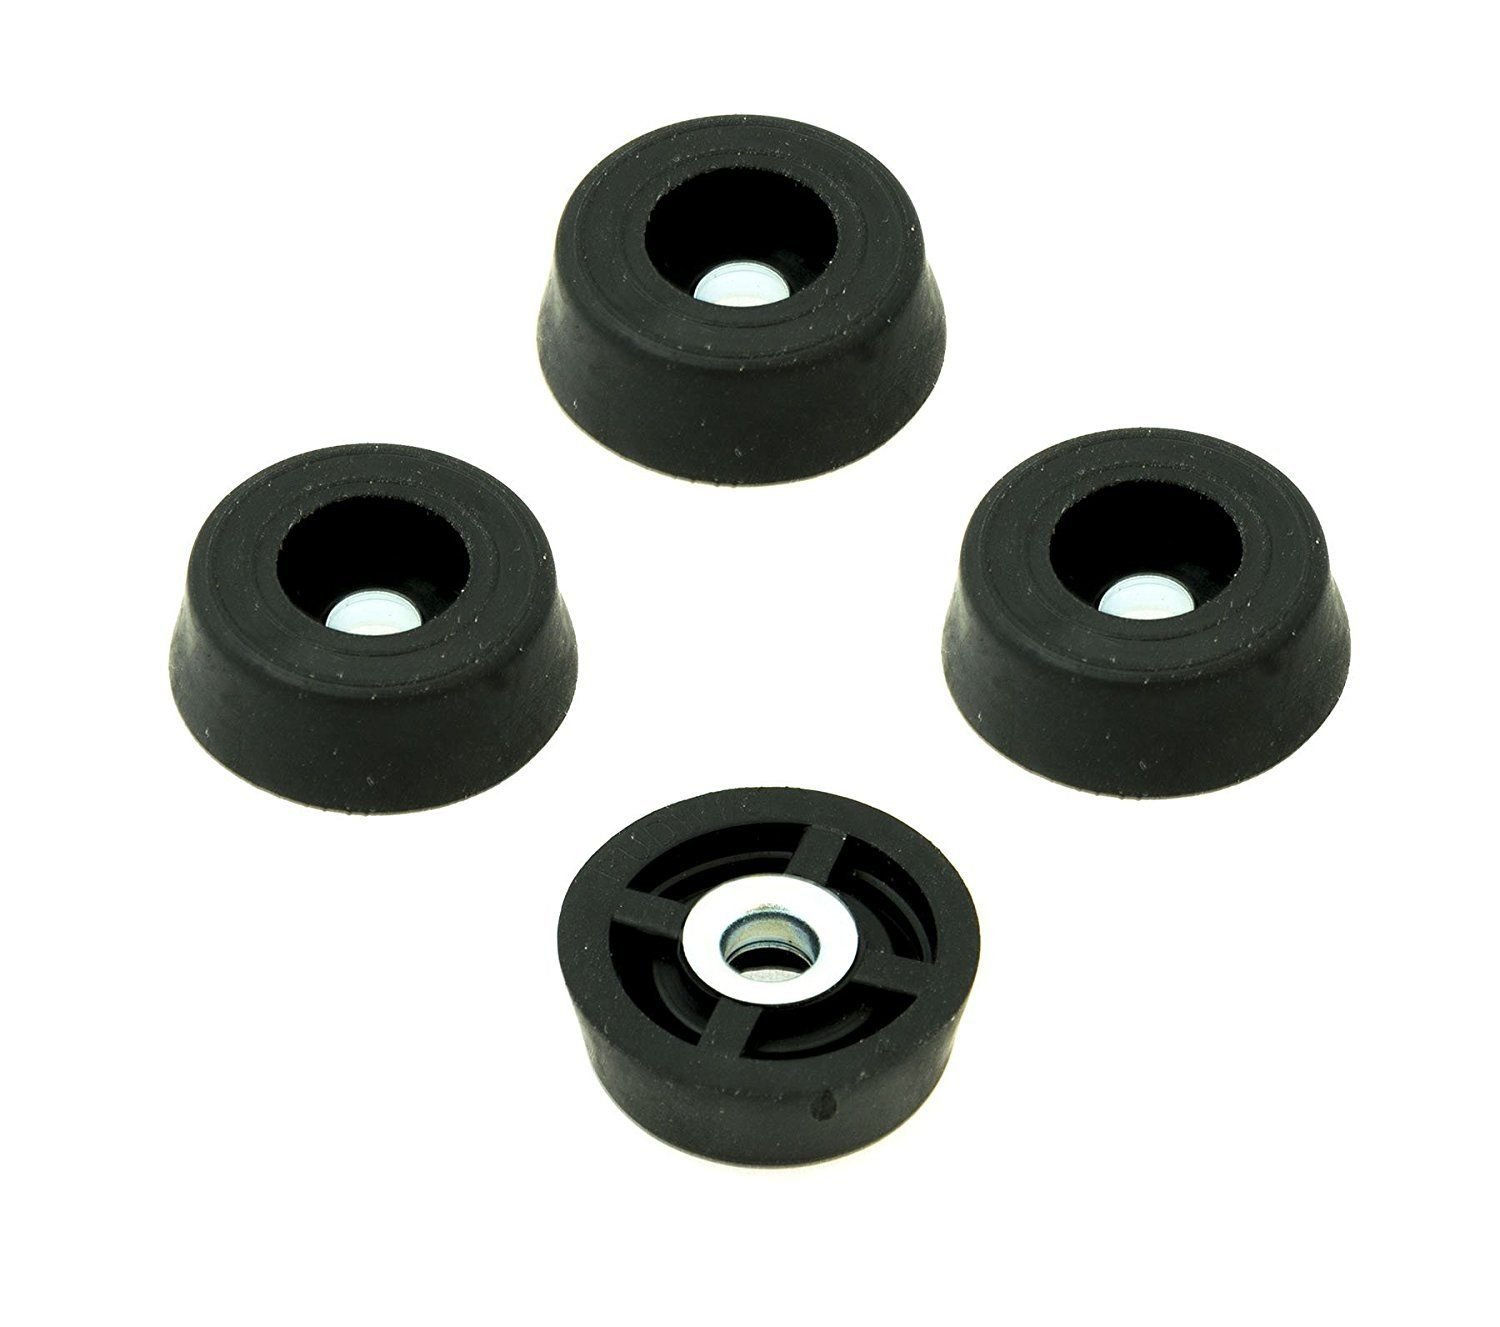 250 Small Round Rubber Feet W/Screws - .250 H X .671 D - Made in USA - Food Safe Cutting Boards Electronics Crafts # by Rubberfeet US (Image #3)